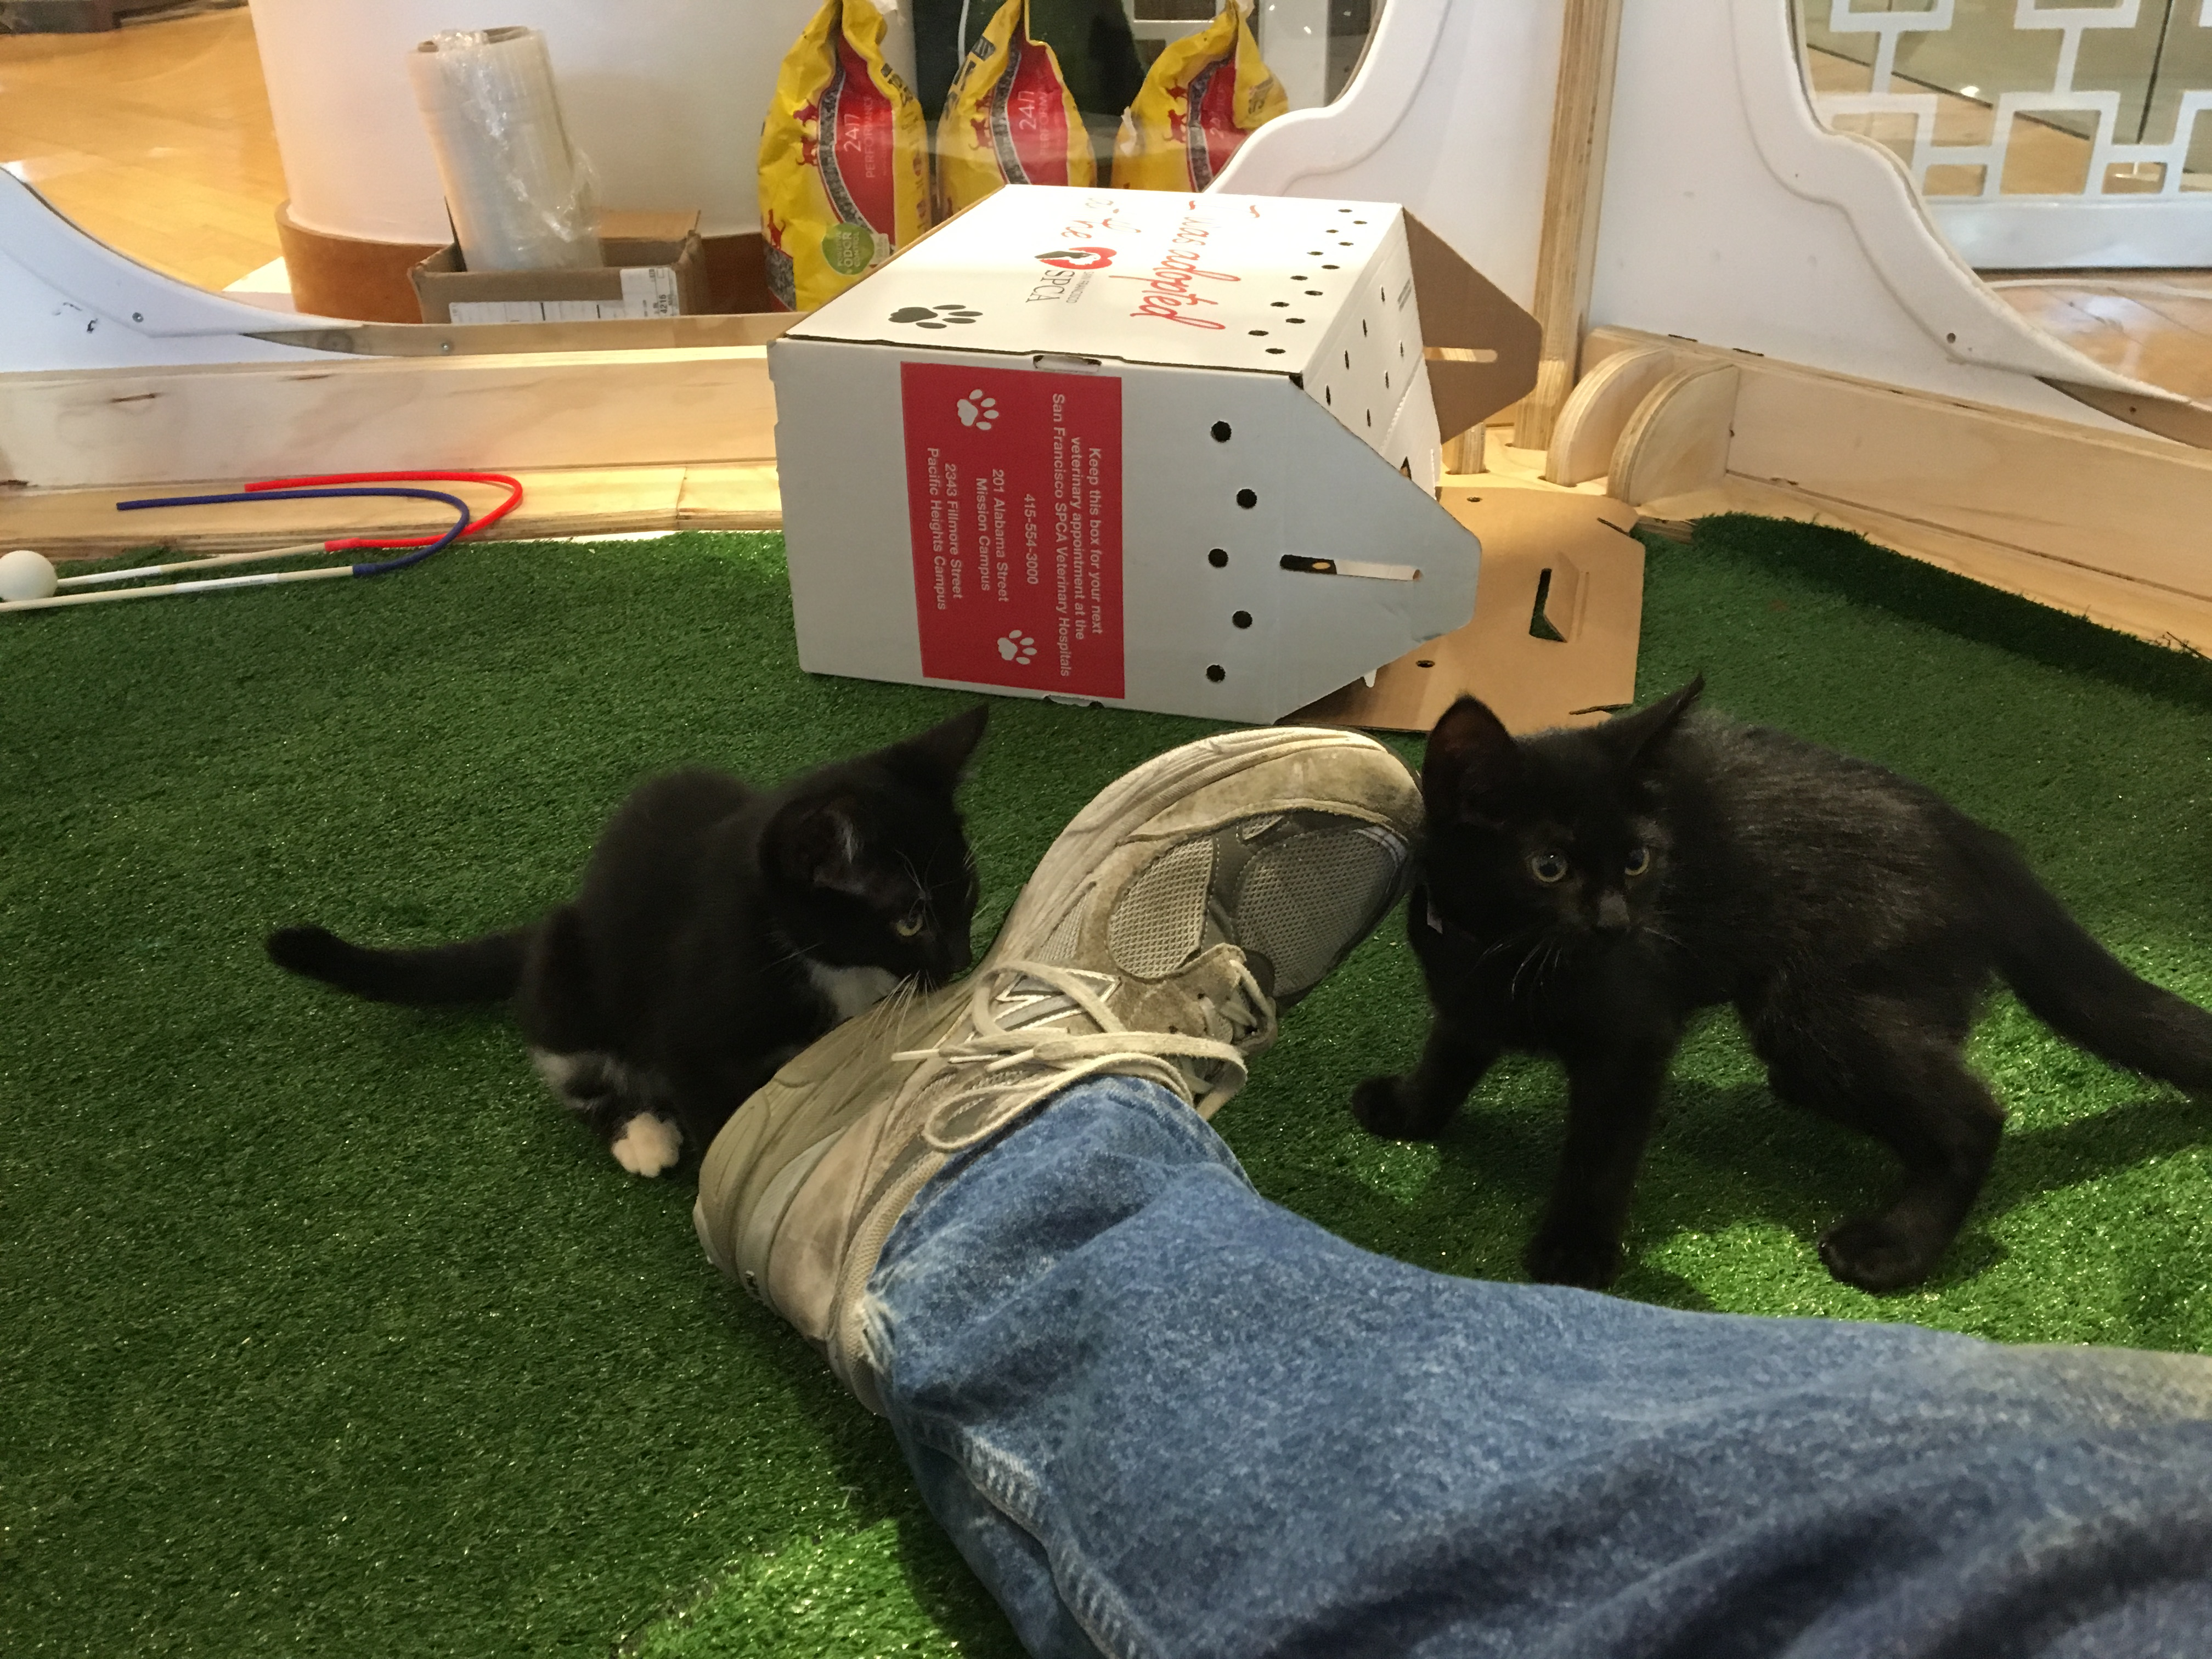 Two Kittens Investigating The Photographer's Right Sneaker